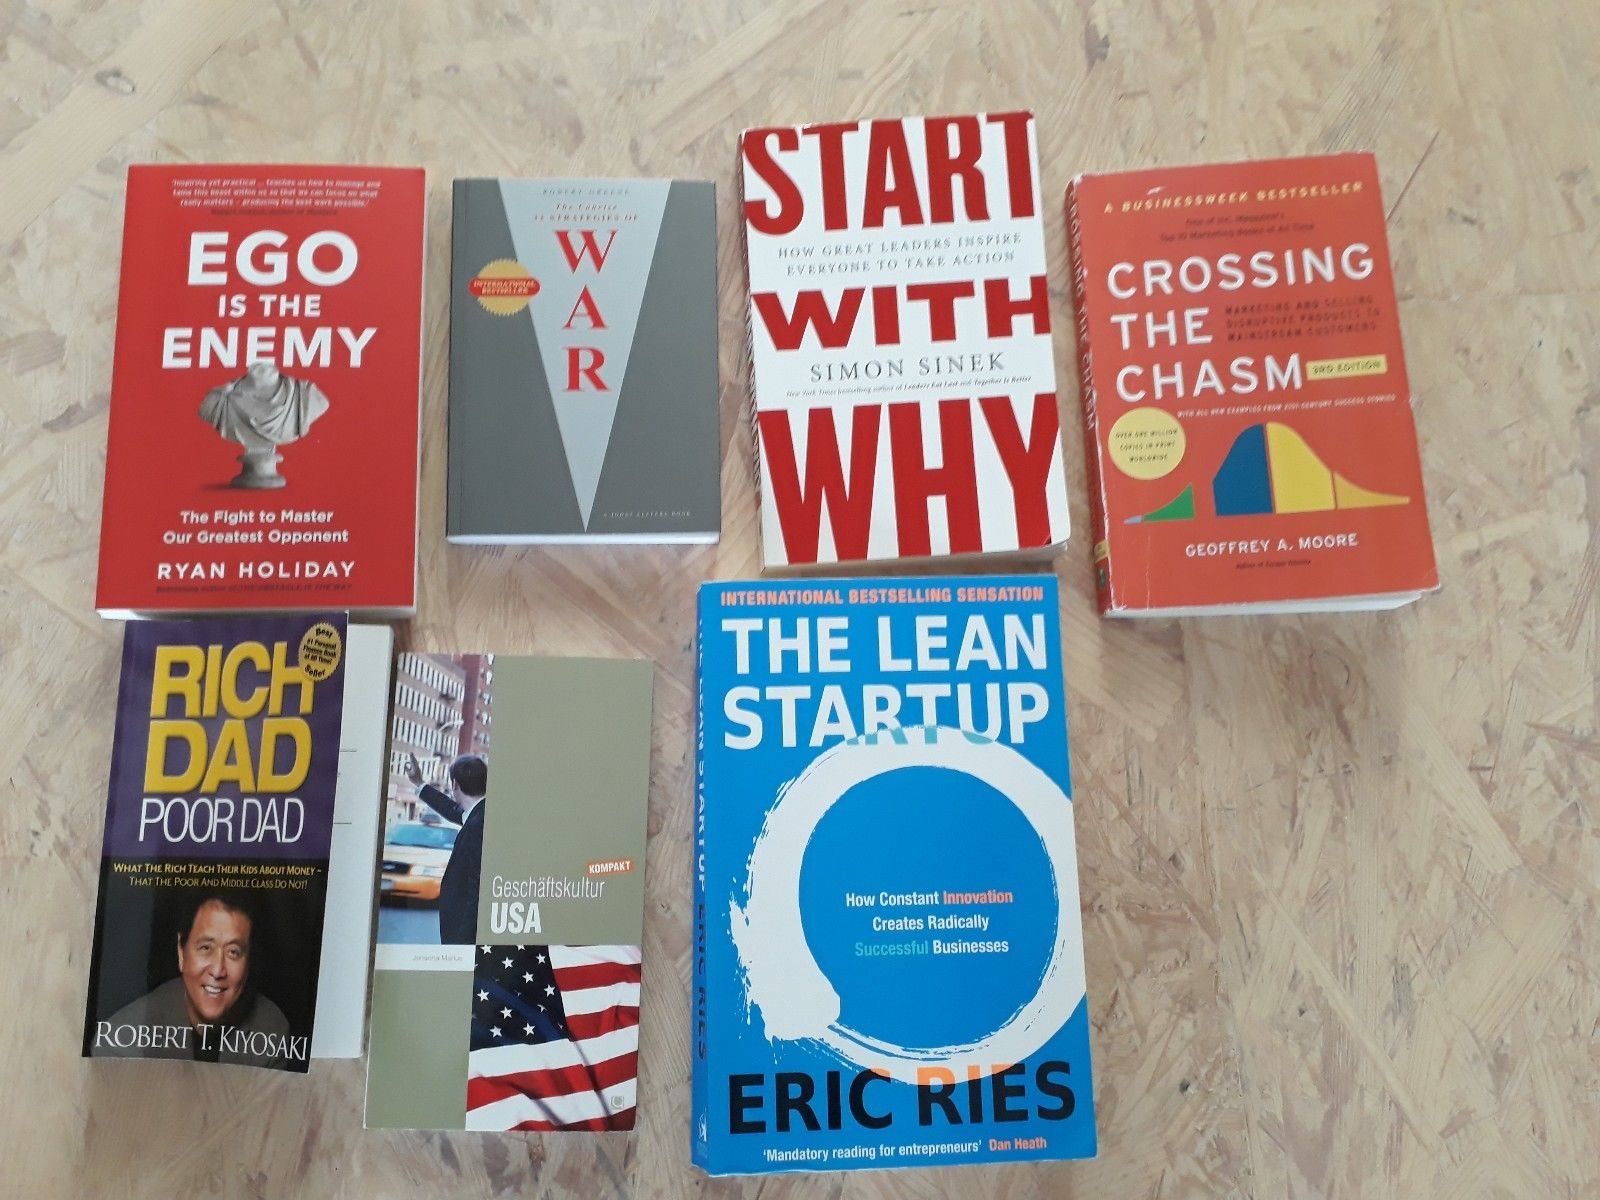 Business Books, Start-Up Bücher, Lean Startup, Start With Why, Ego is the enemy